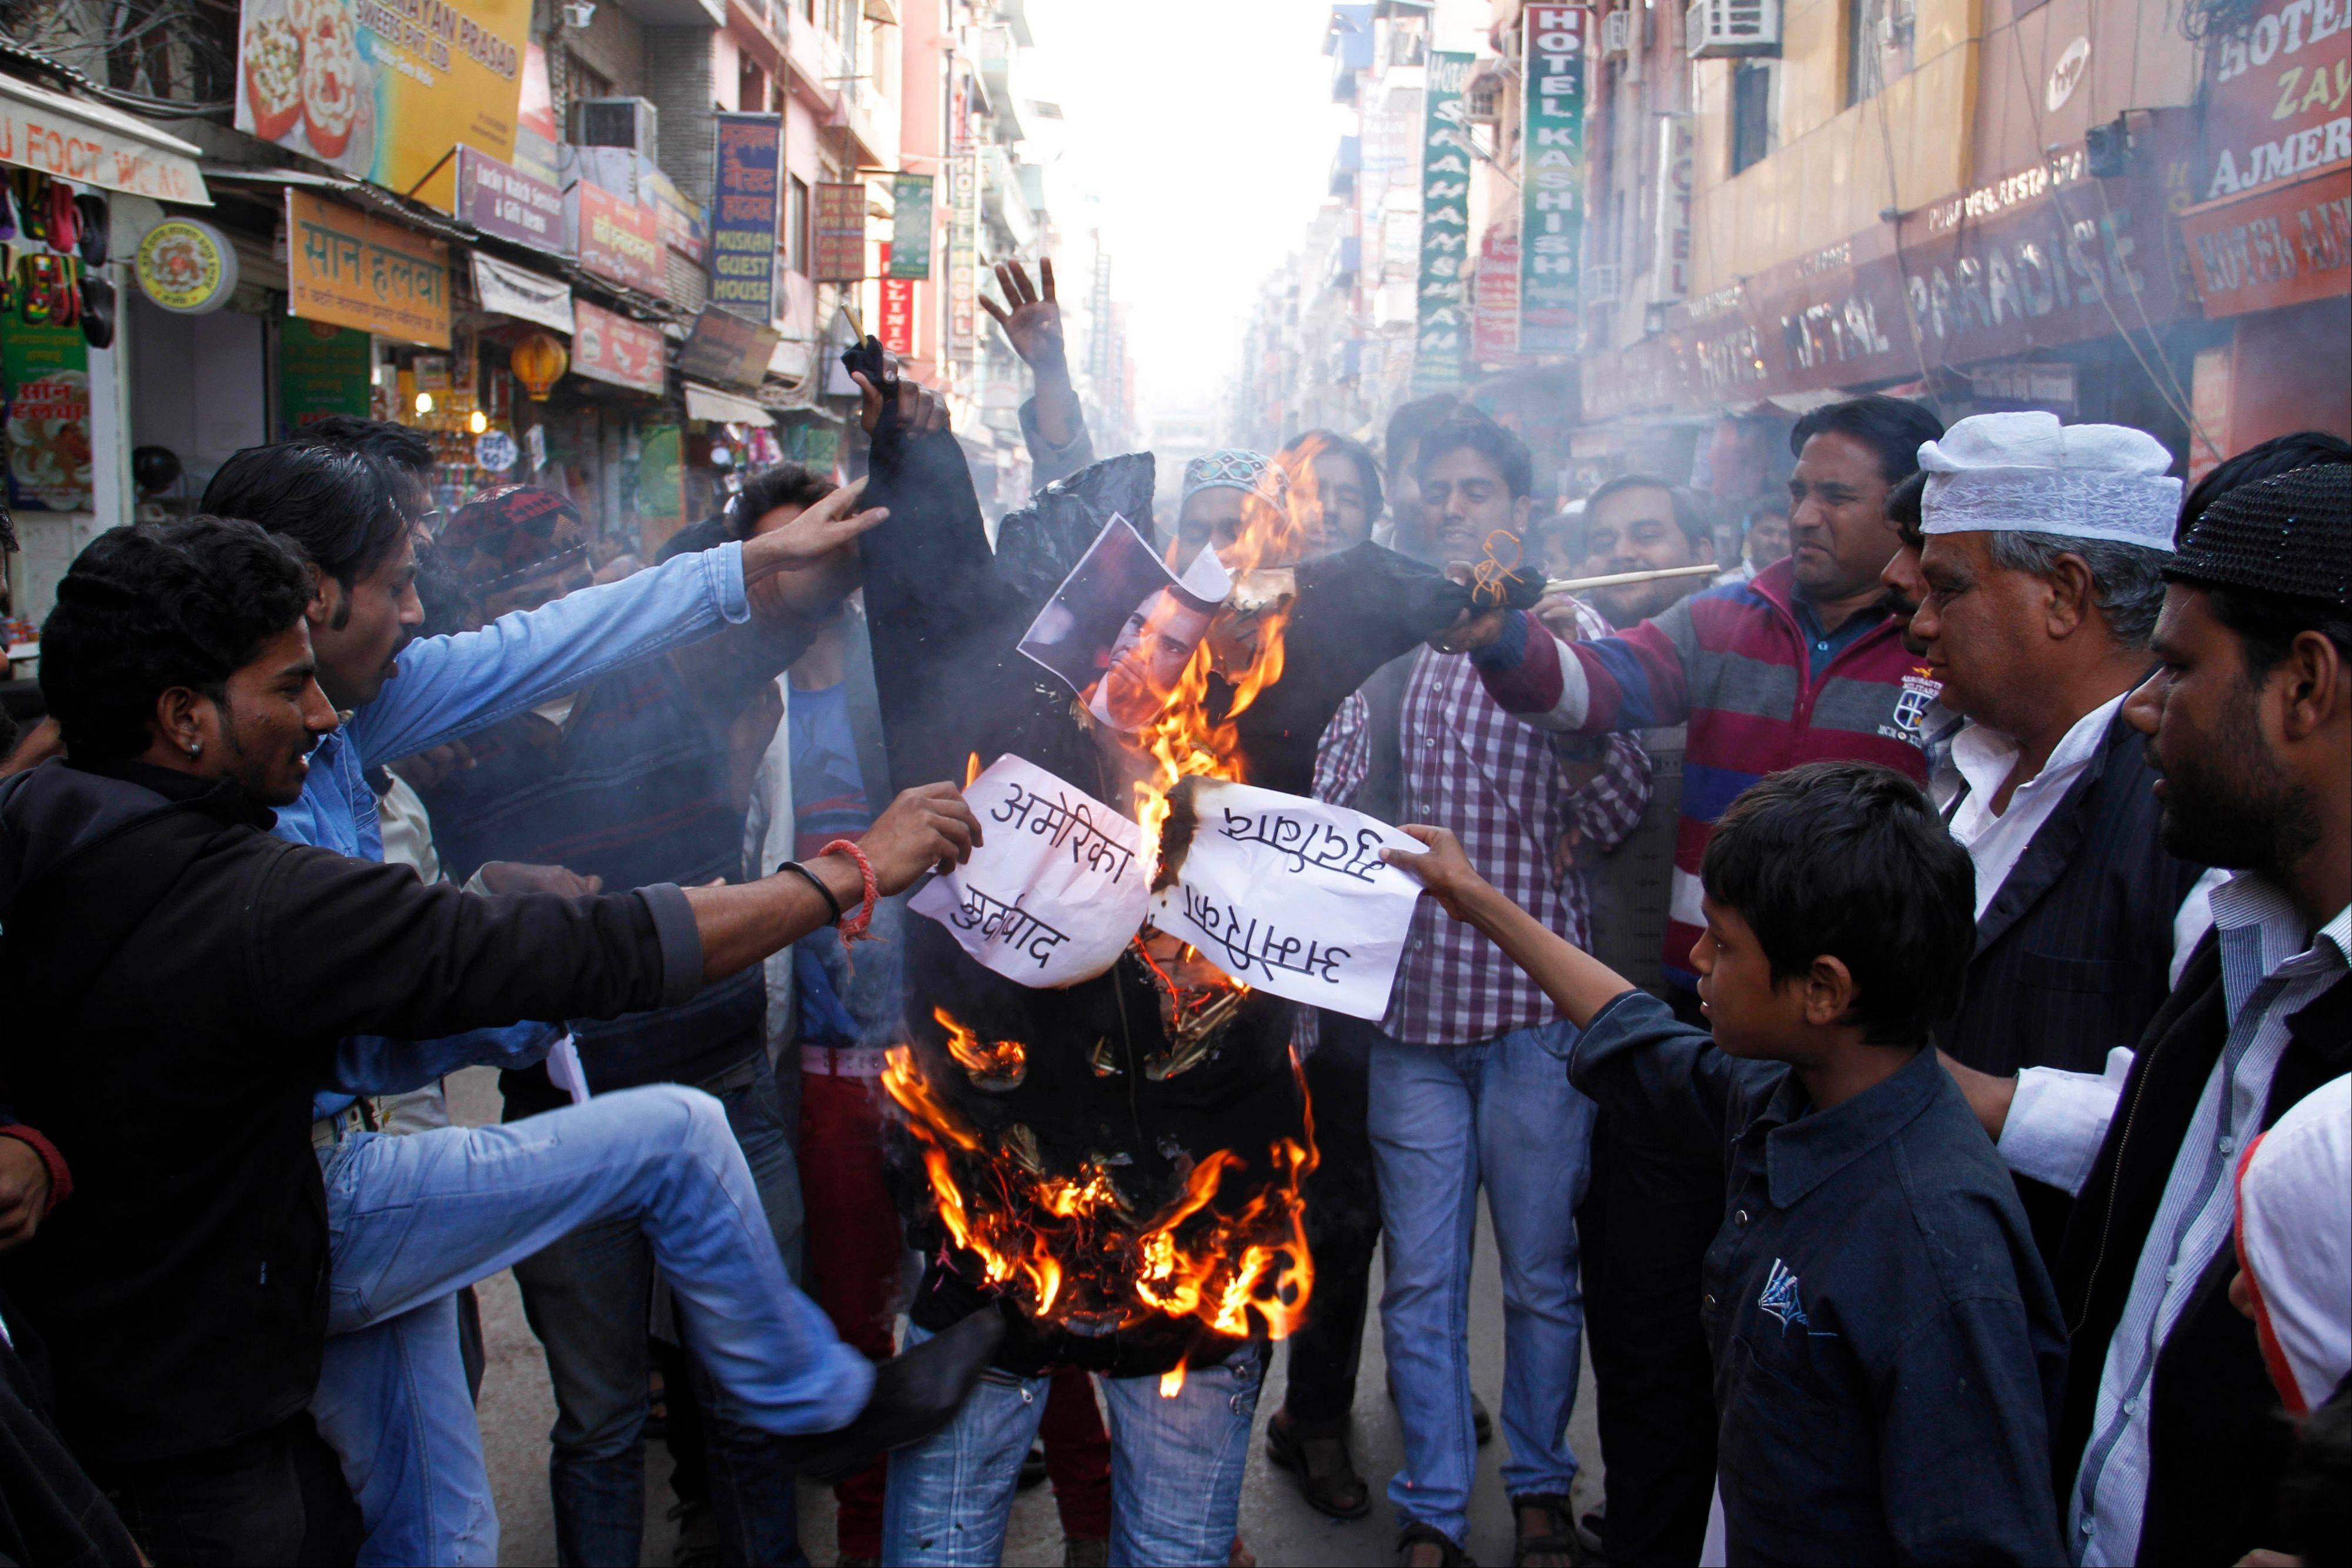 Indian Muslims burn an effigy of President Barack Obama as they protest against the alleged mistreatment of New York based Indian diplomat Devyani Khobragade, in Ajmer, India, Thursday. The case has sparked a diplomatic furor between the United States and India, which is incensed over what its officials described as degrading treatment towards India�s deputy consul general in New York.